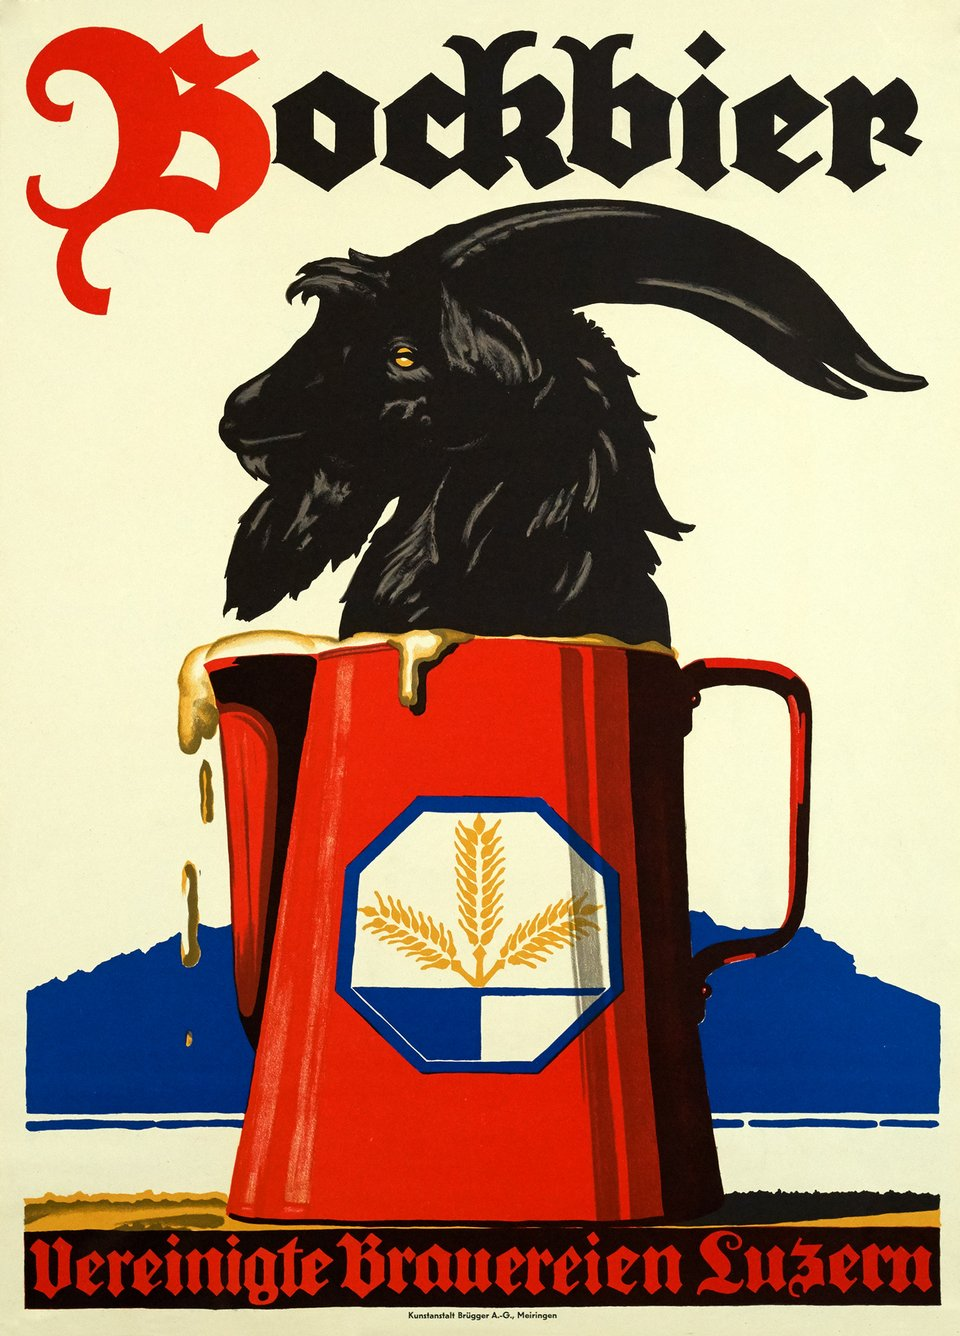 Bockbier – Affiche ancienne – ANONYMOUS – 1930